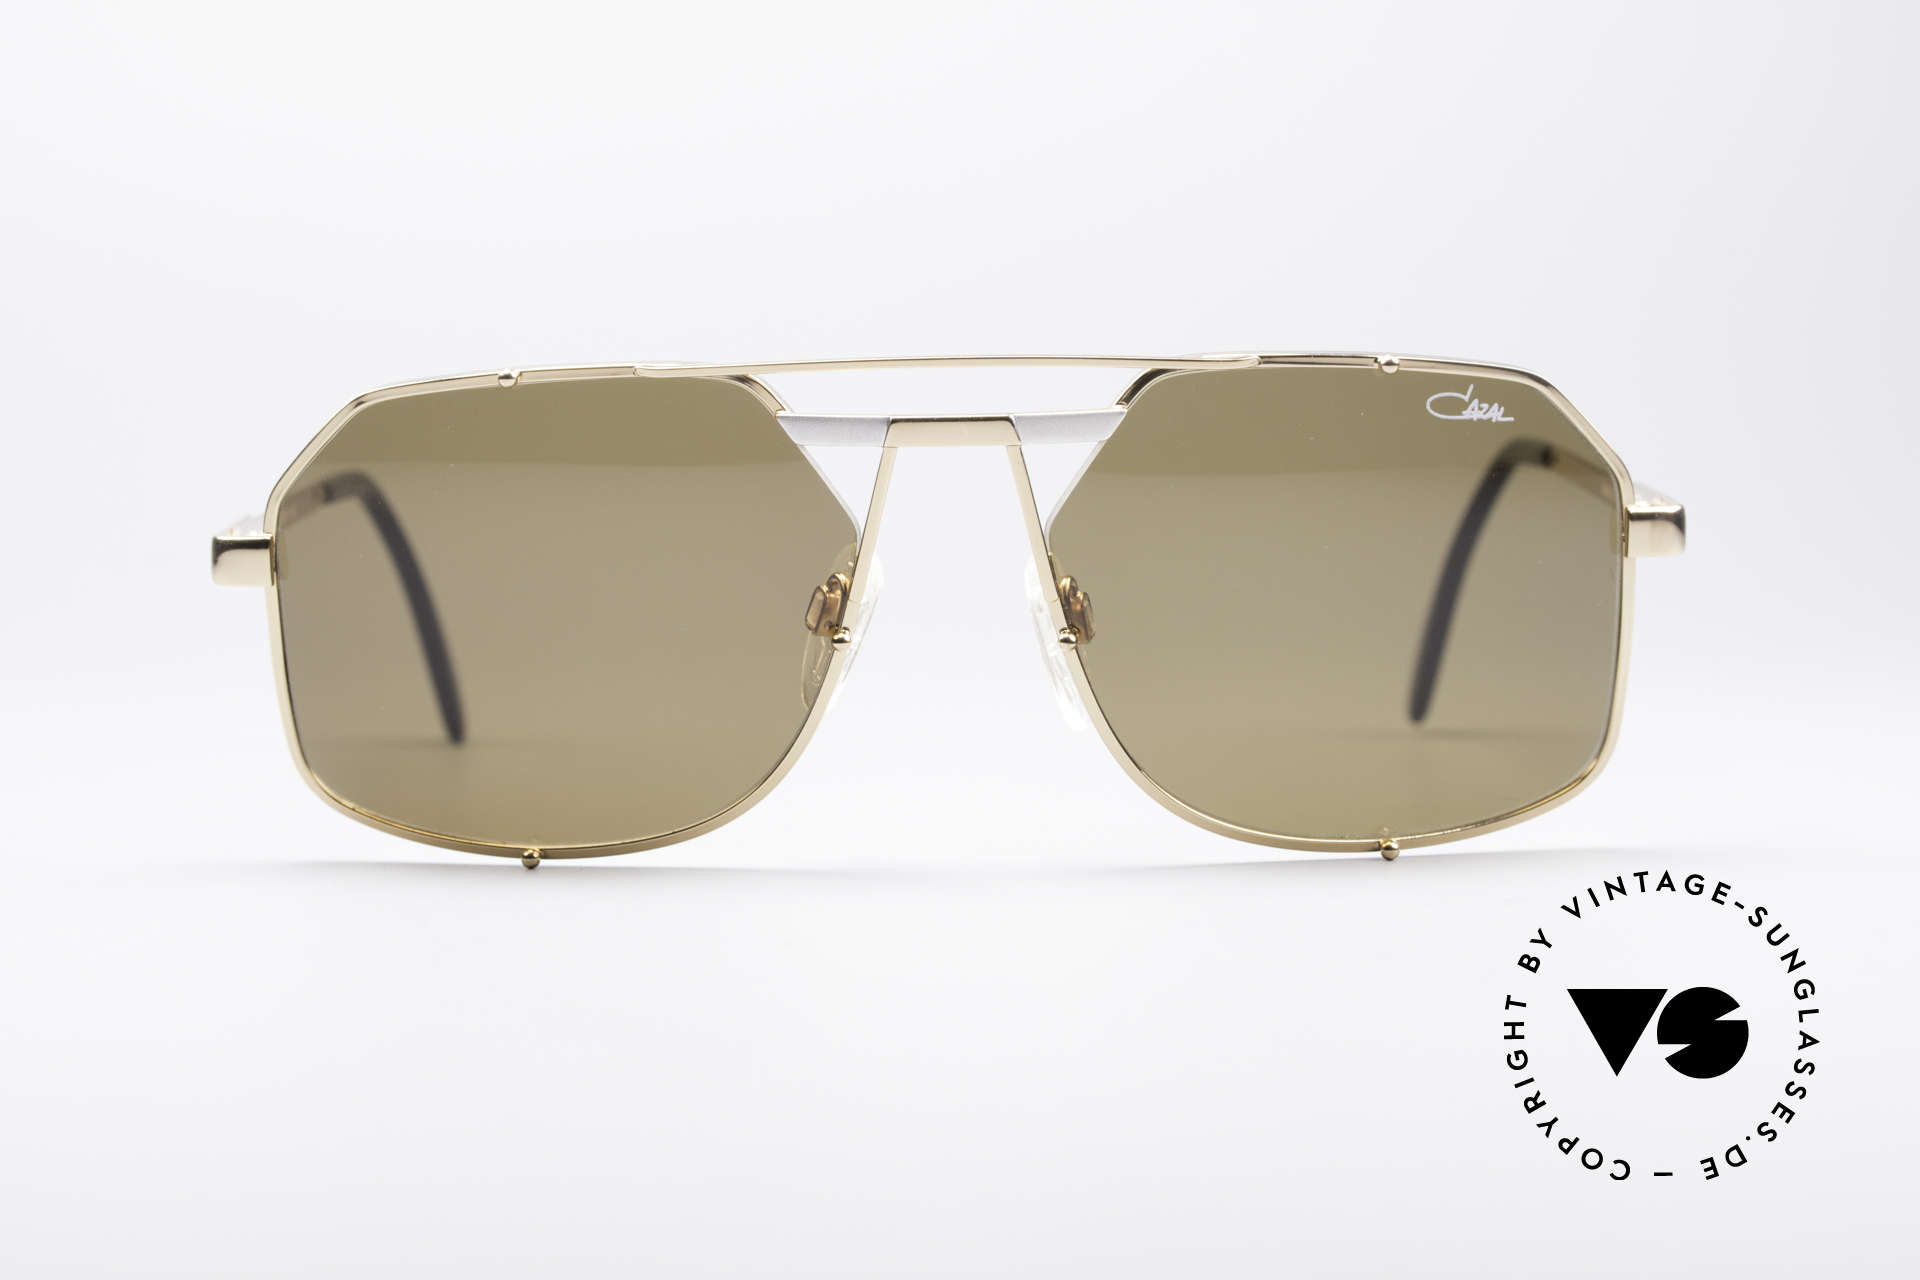 Cazal 959 90's Gentlemen's Shades, unbelievable high-end quality.. You must feel this!, Made for Men